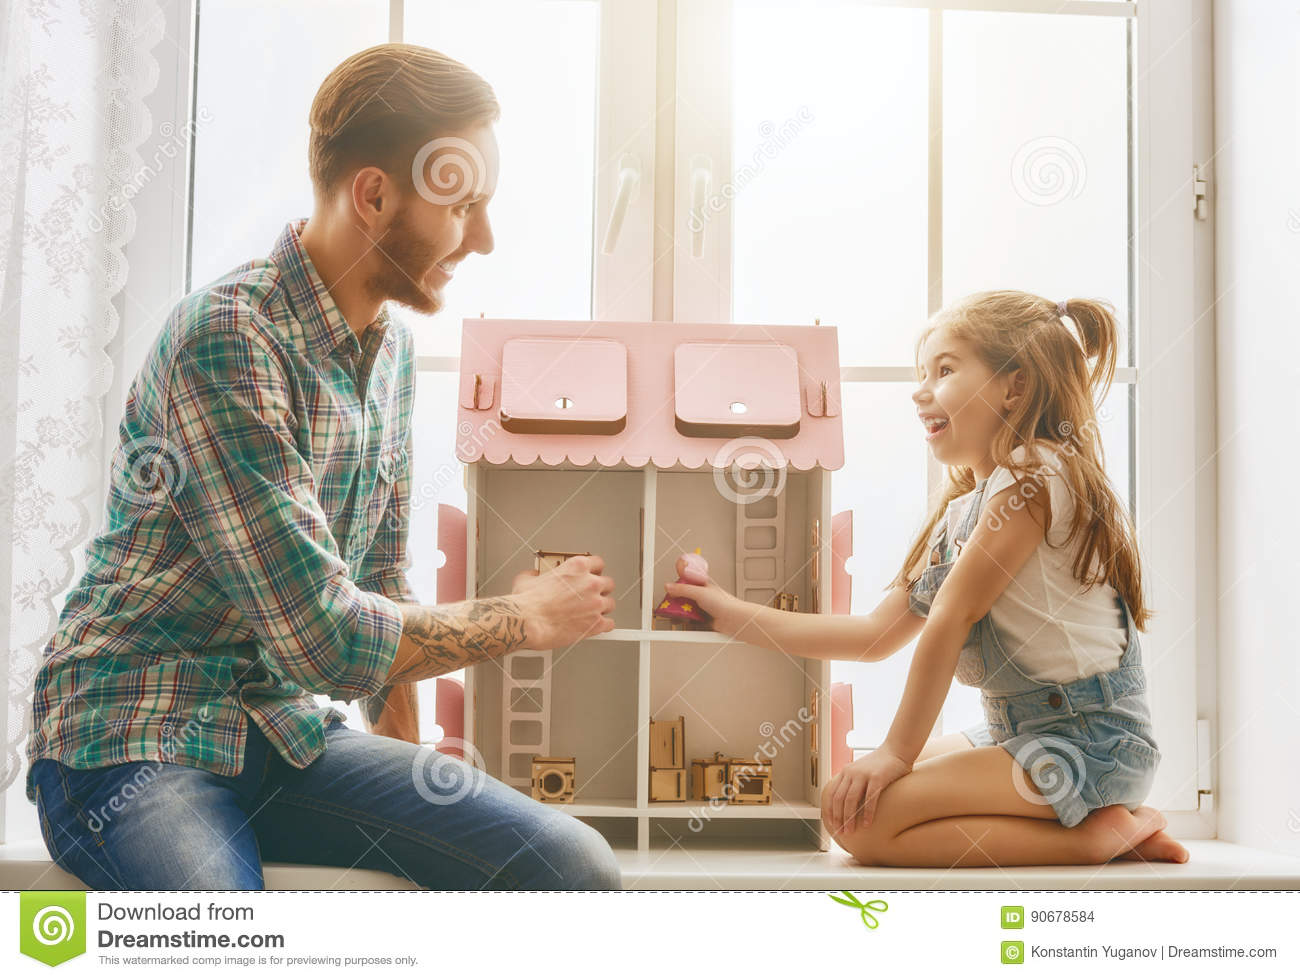 analysis of doll house play Free essay: mrs mary rorke english 102 1st nov 2005 a doll house a critical analysis when nora slammed the door shut in her doll's house in.